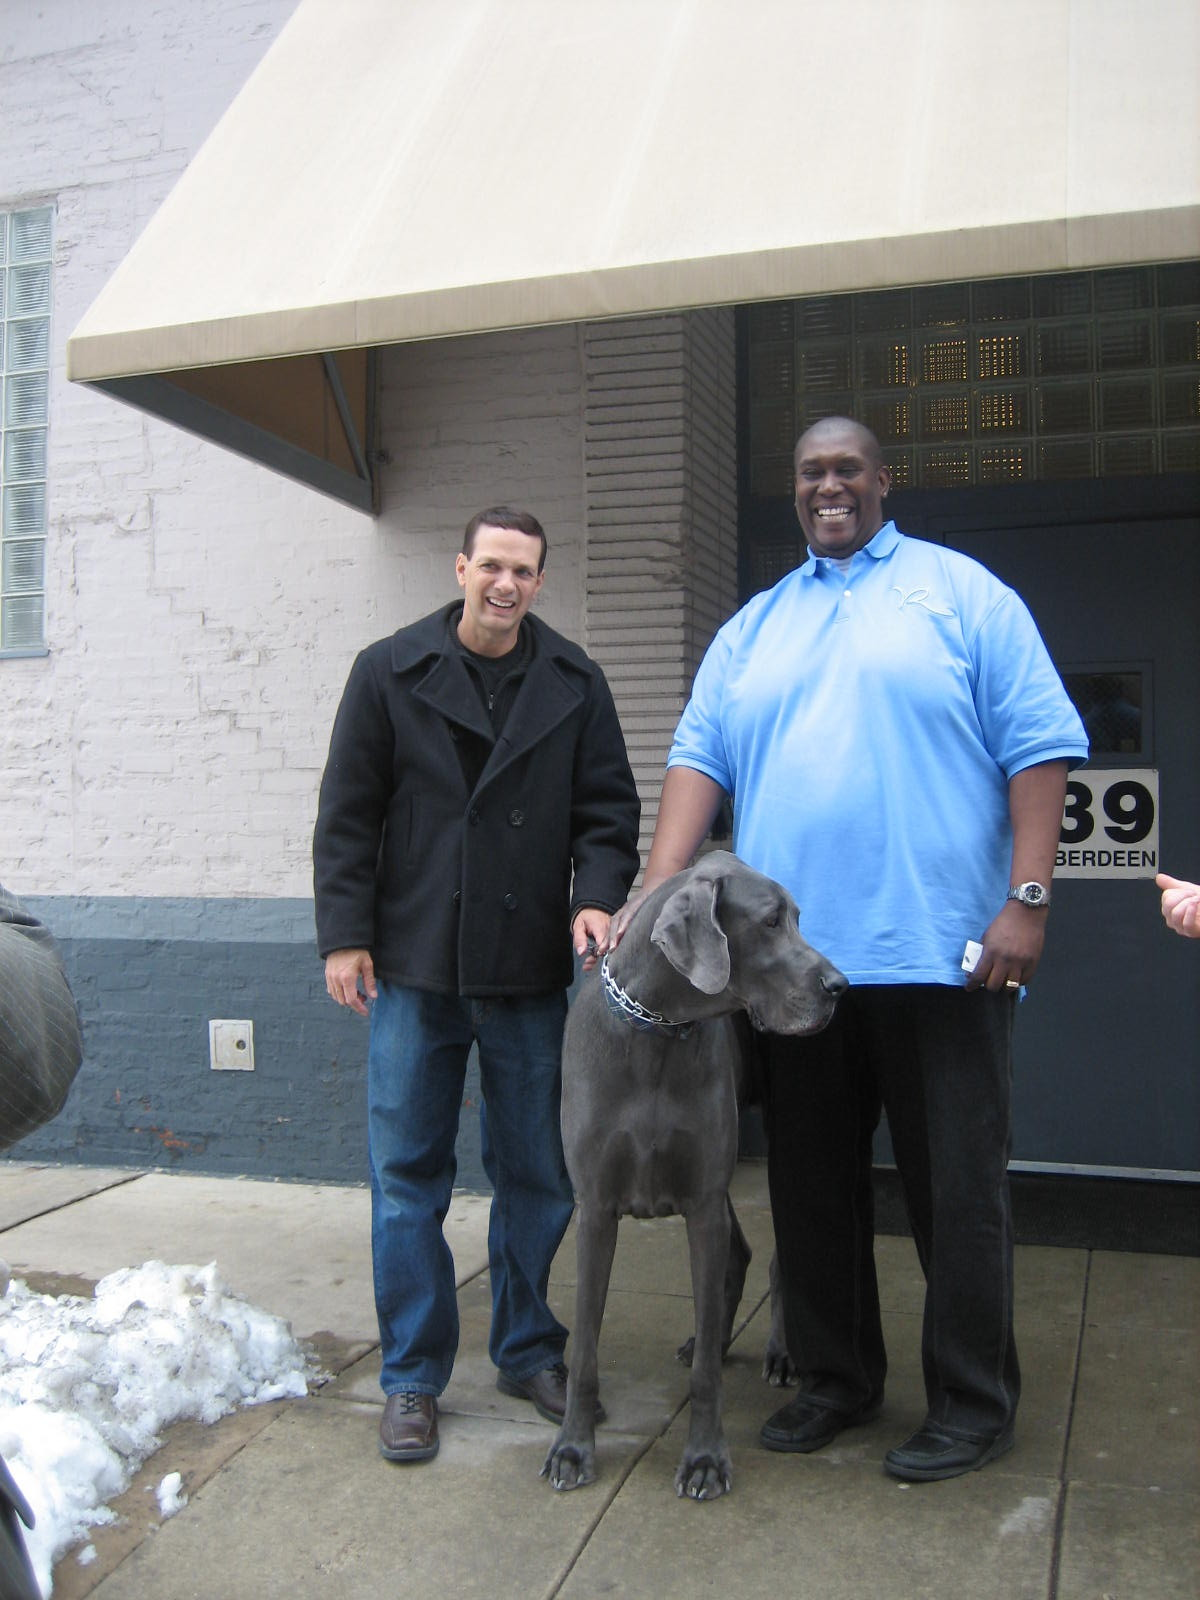 George with one of Oprah's HUGE bodyguards, Chicago Harpo Studios